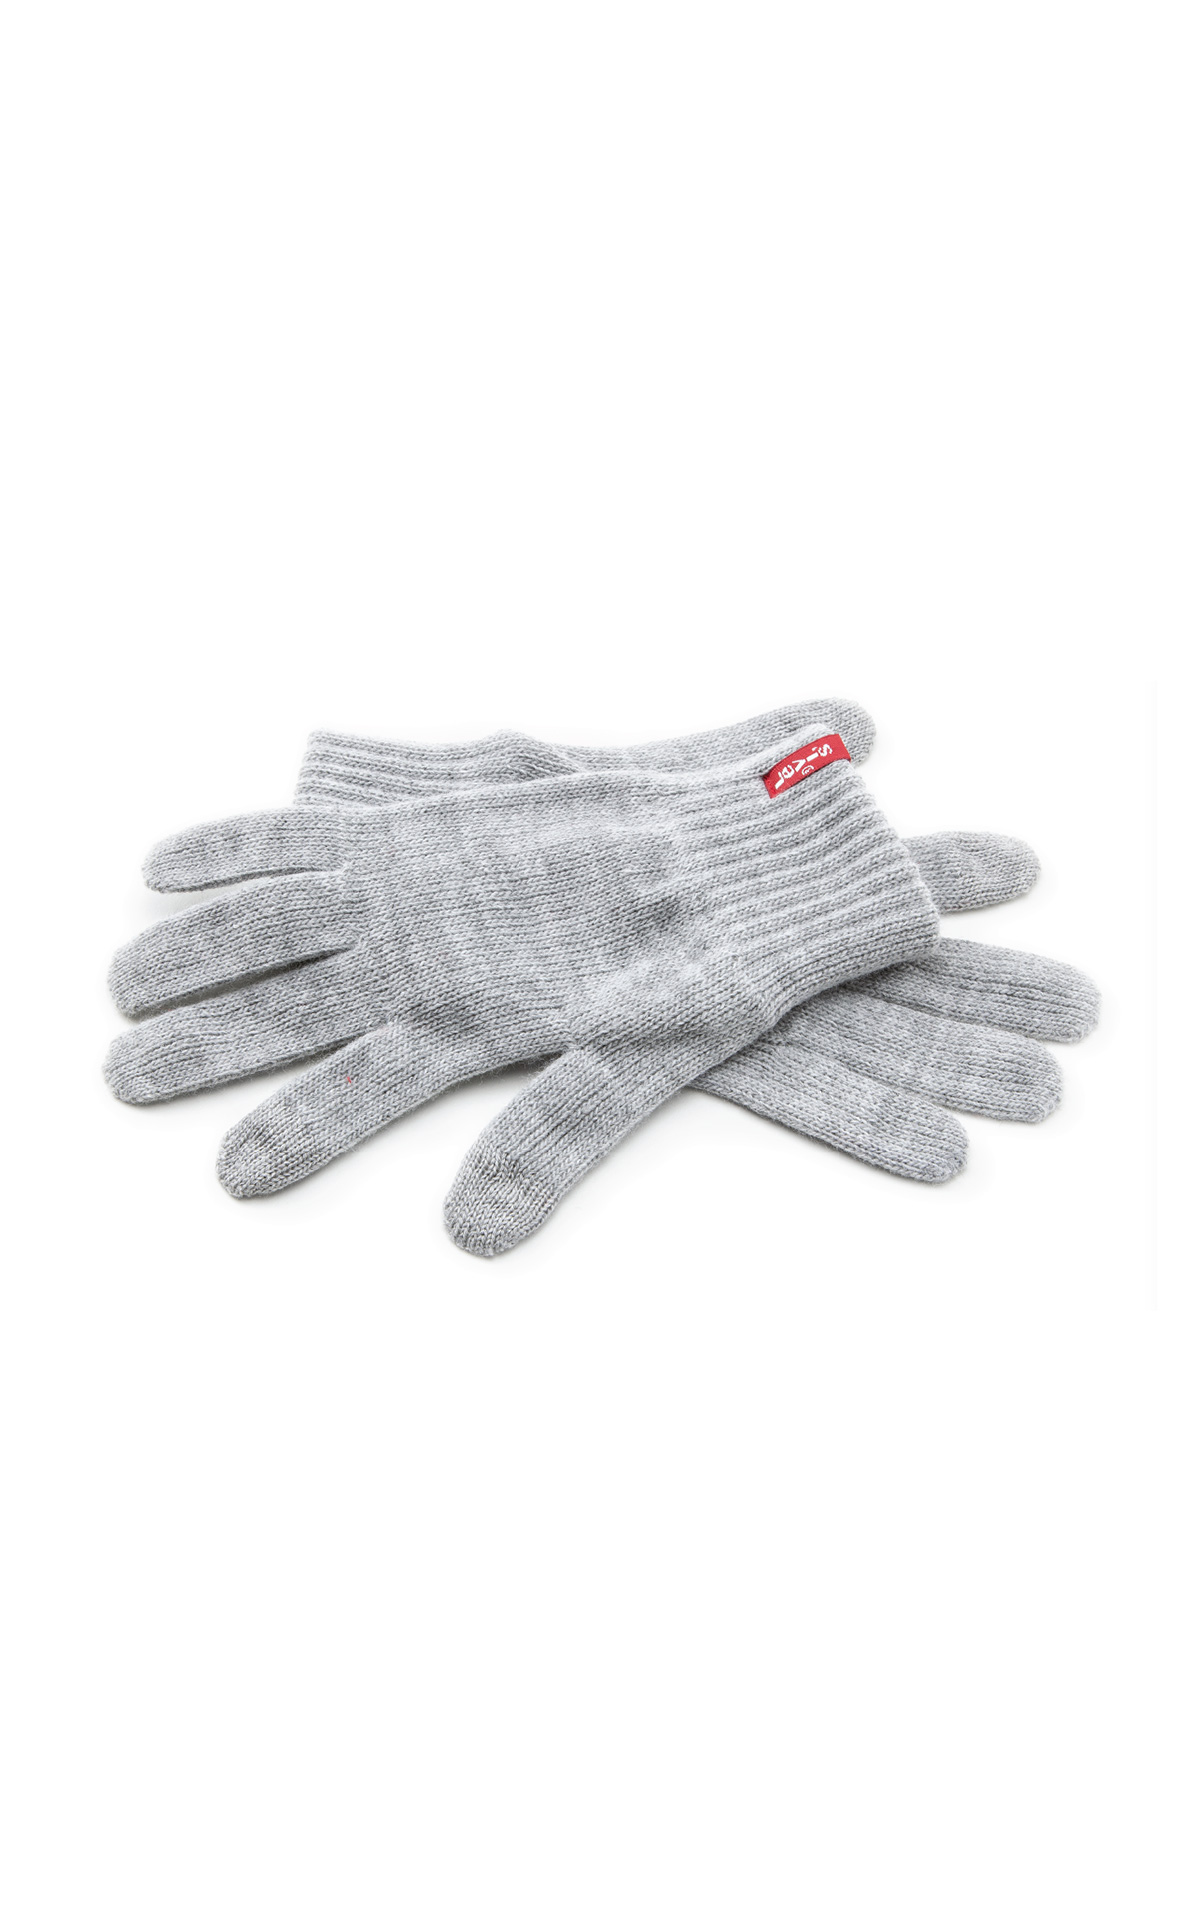 Levi's New touch screen gloves